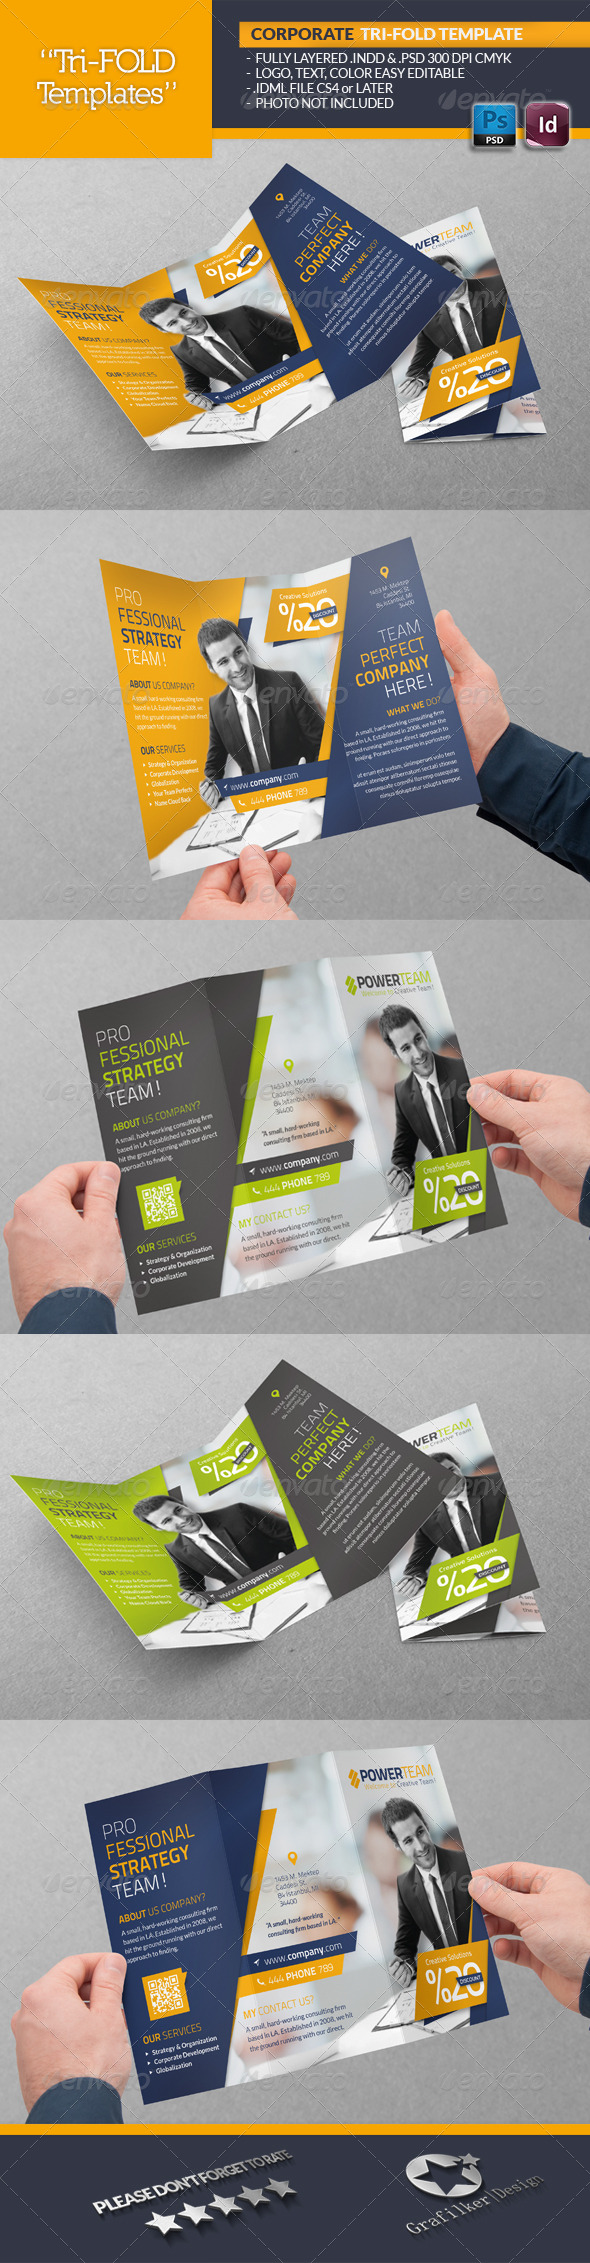 GraphicRiver Corporate Tri-Fold Template 6517089